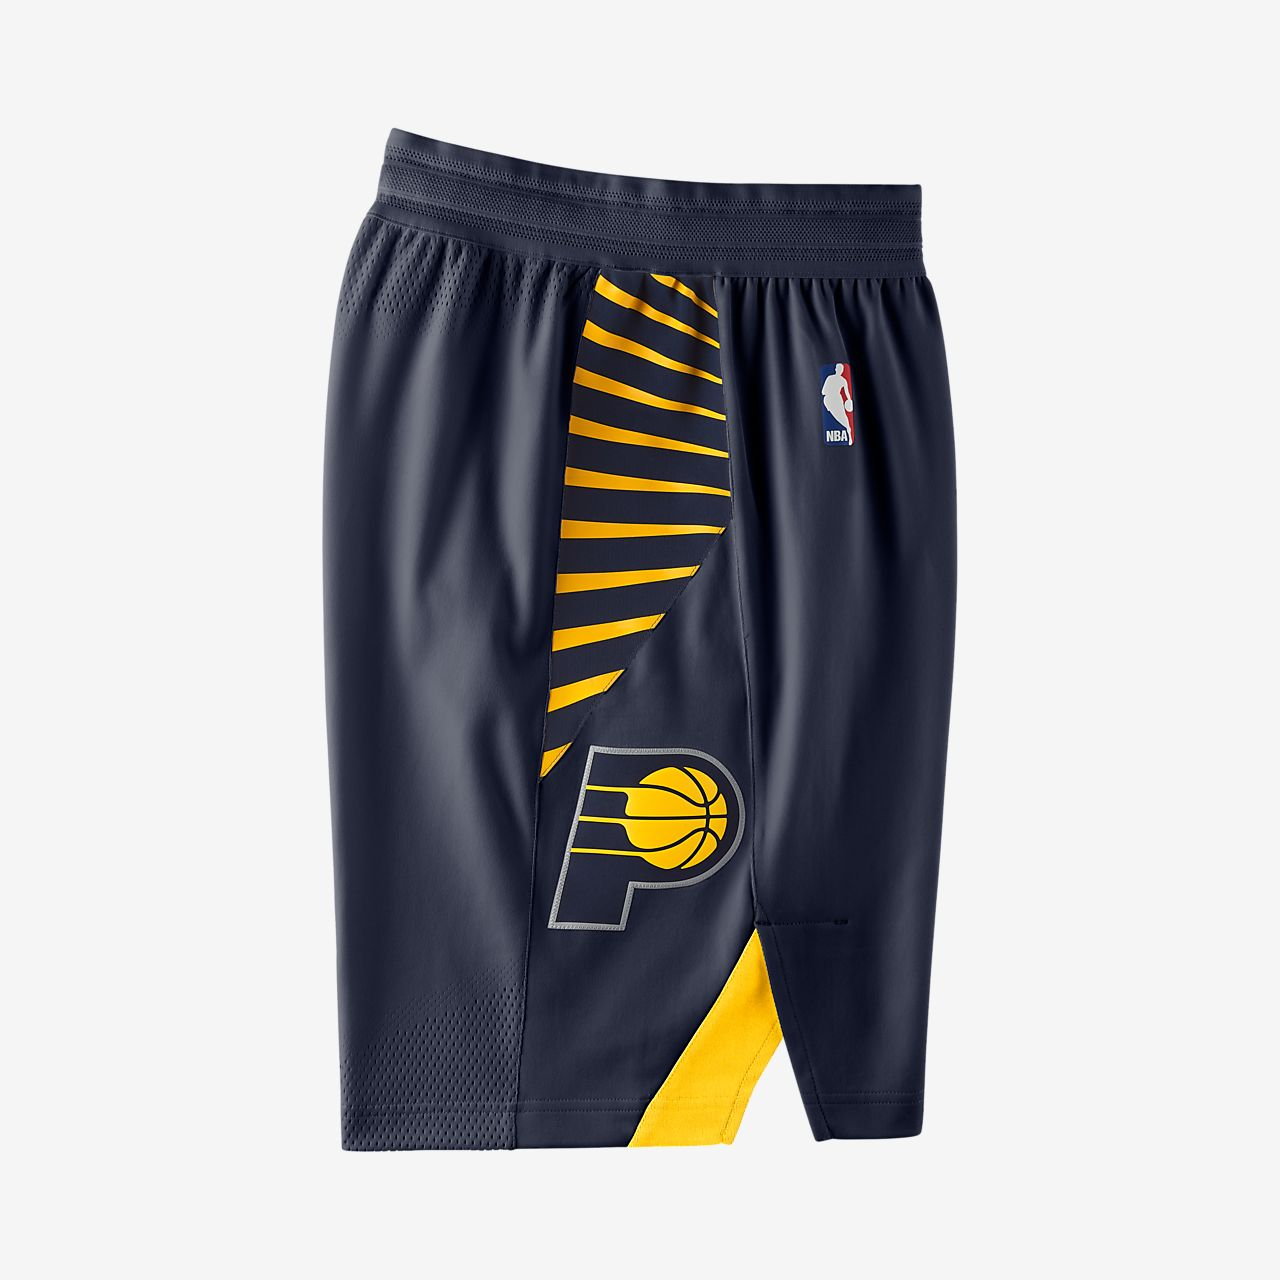 Indiana Pacers Nike Icon Edition Authentic Men's NBA Shorts